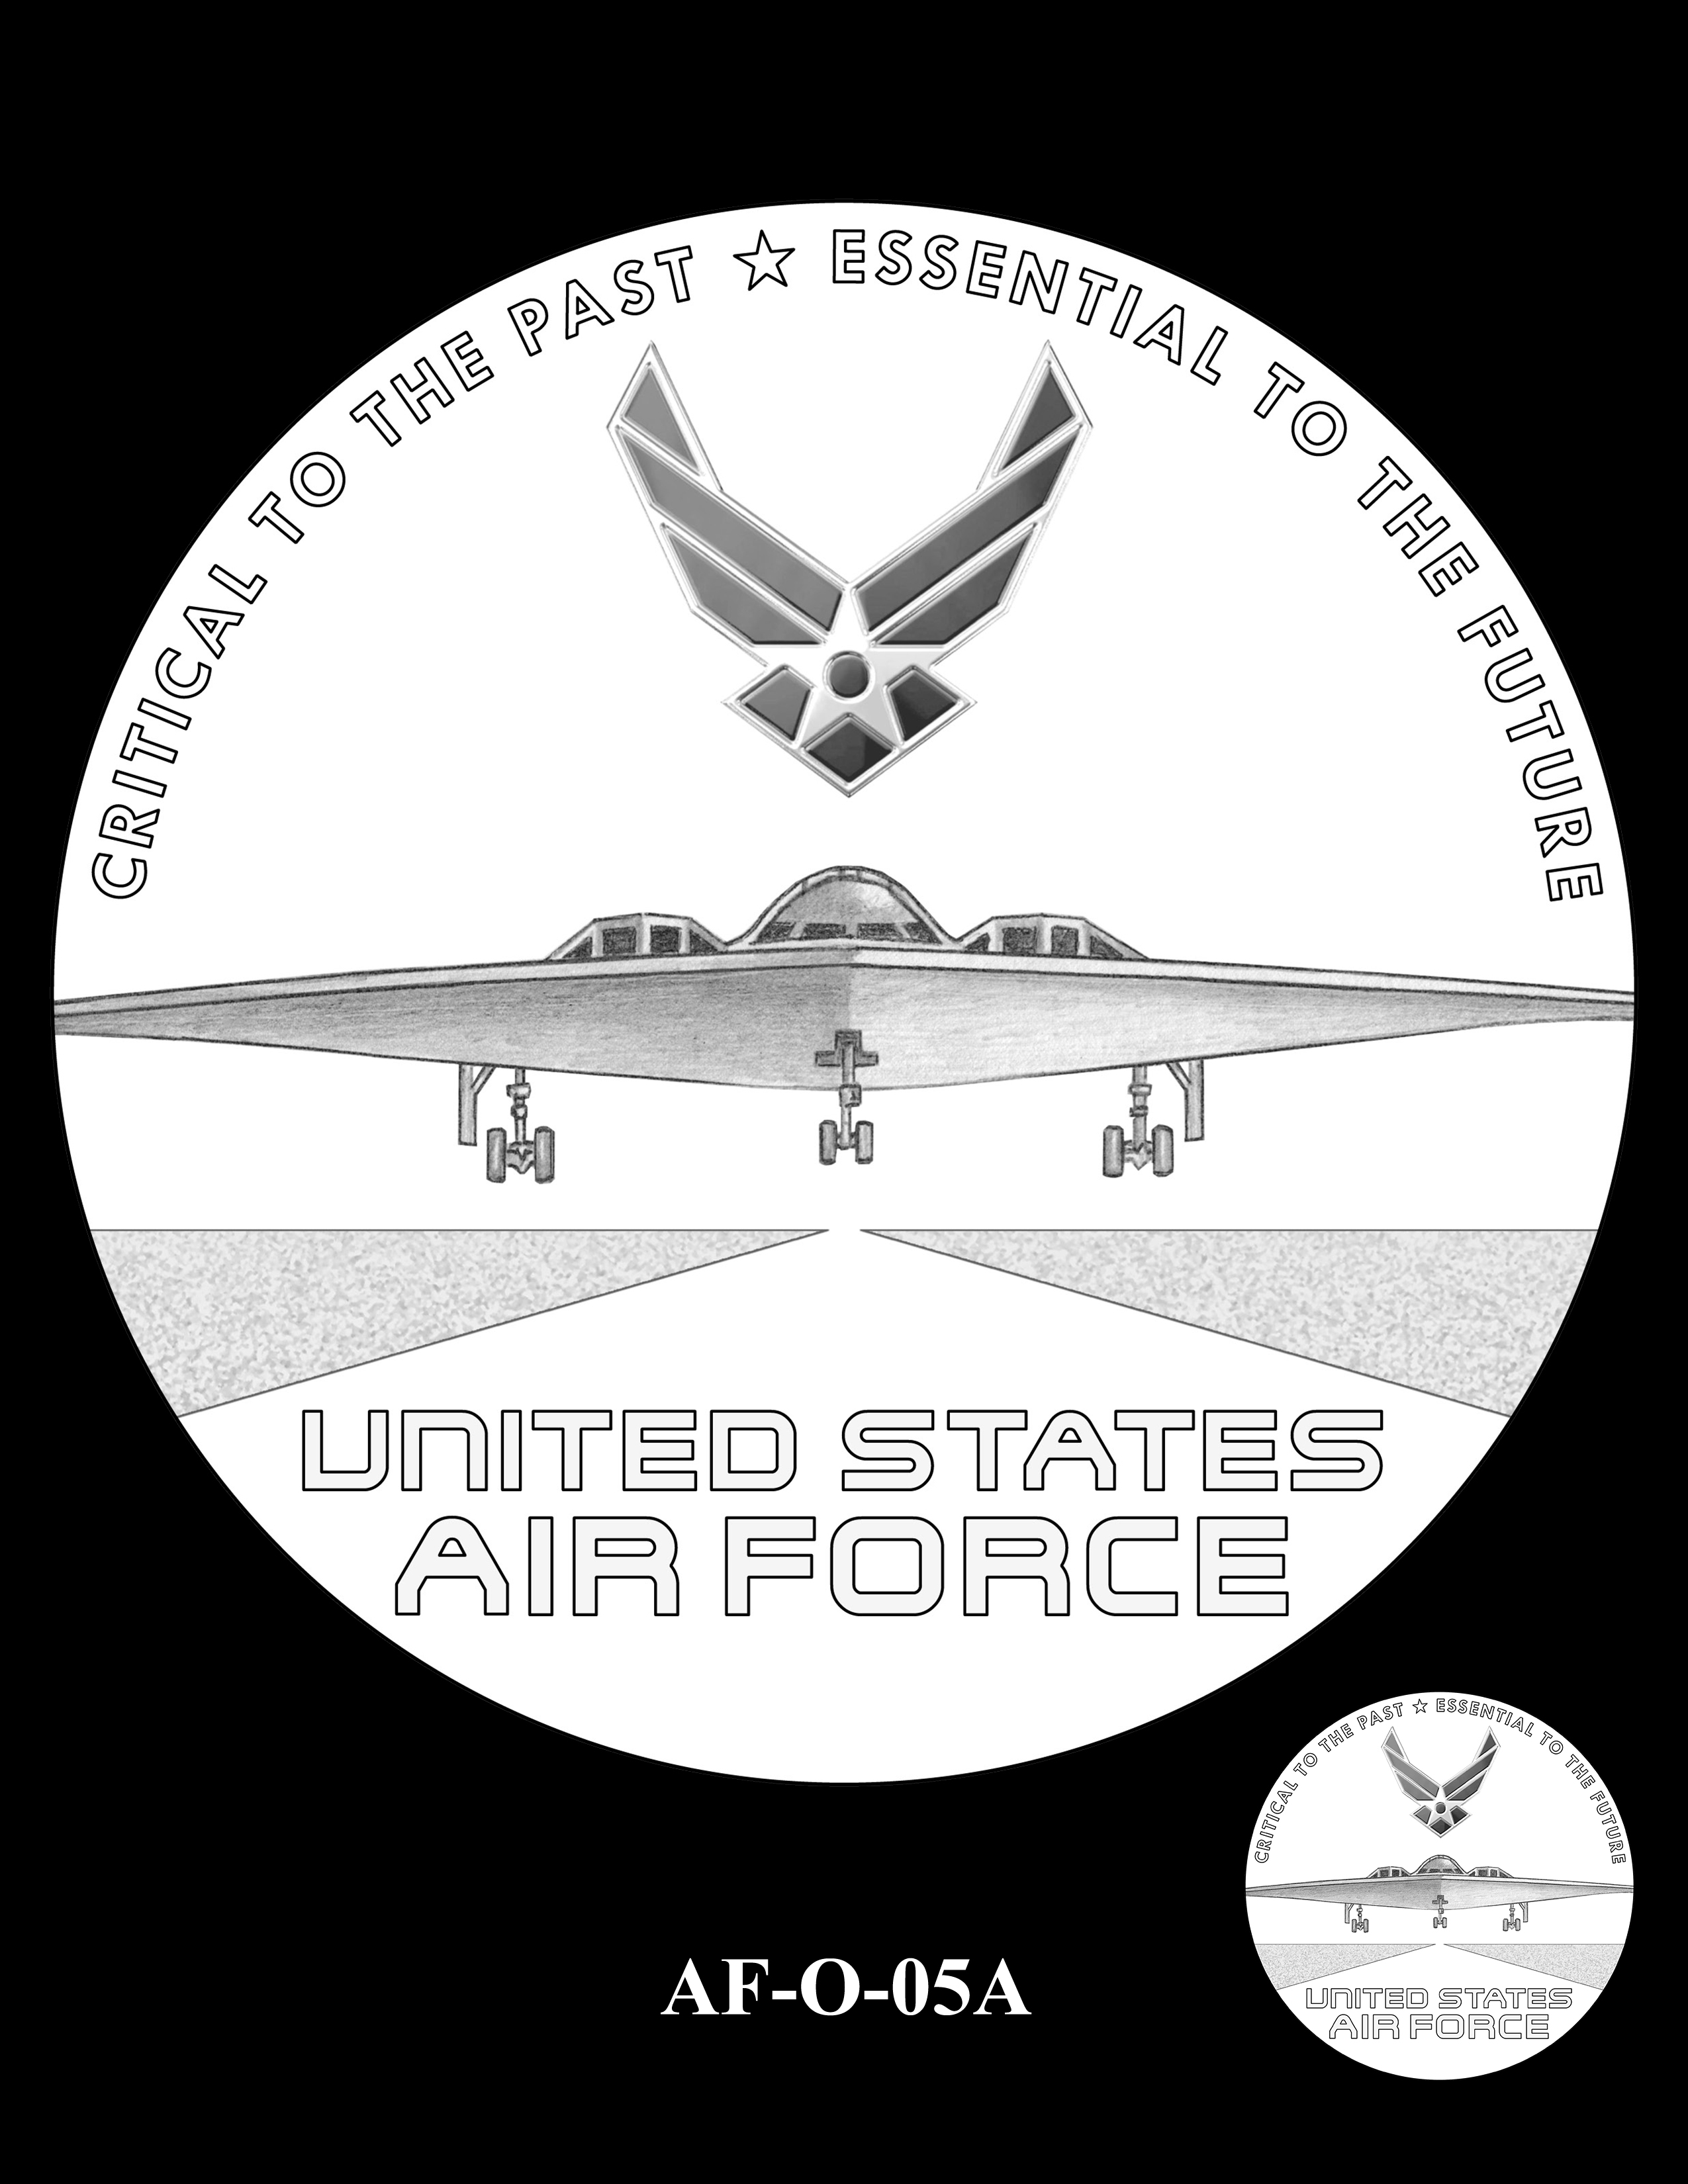 AF-O-05A -- Armed Forces Medal - Air Force